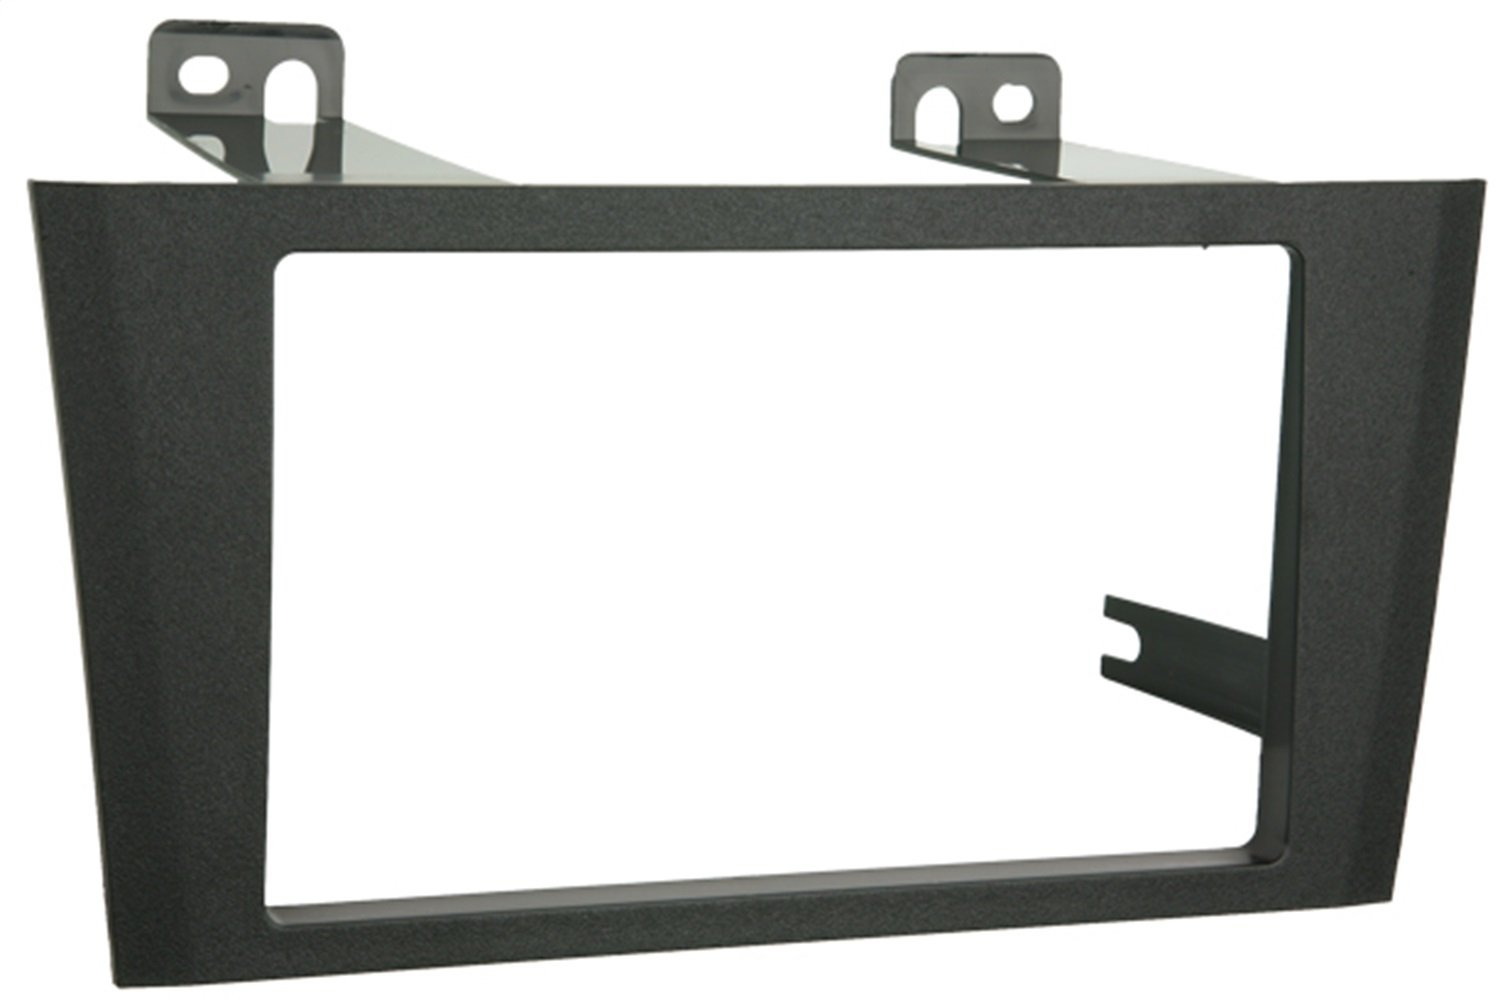 Metra 95-8211 Double DIN Installation Kit for 2000-2004 Toyota Avalon Vehicles